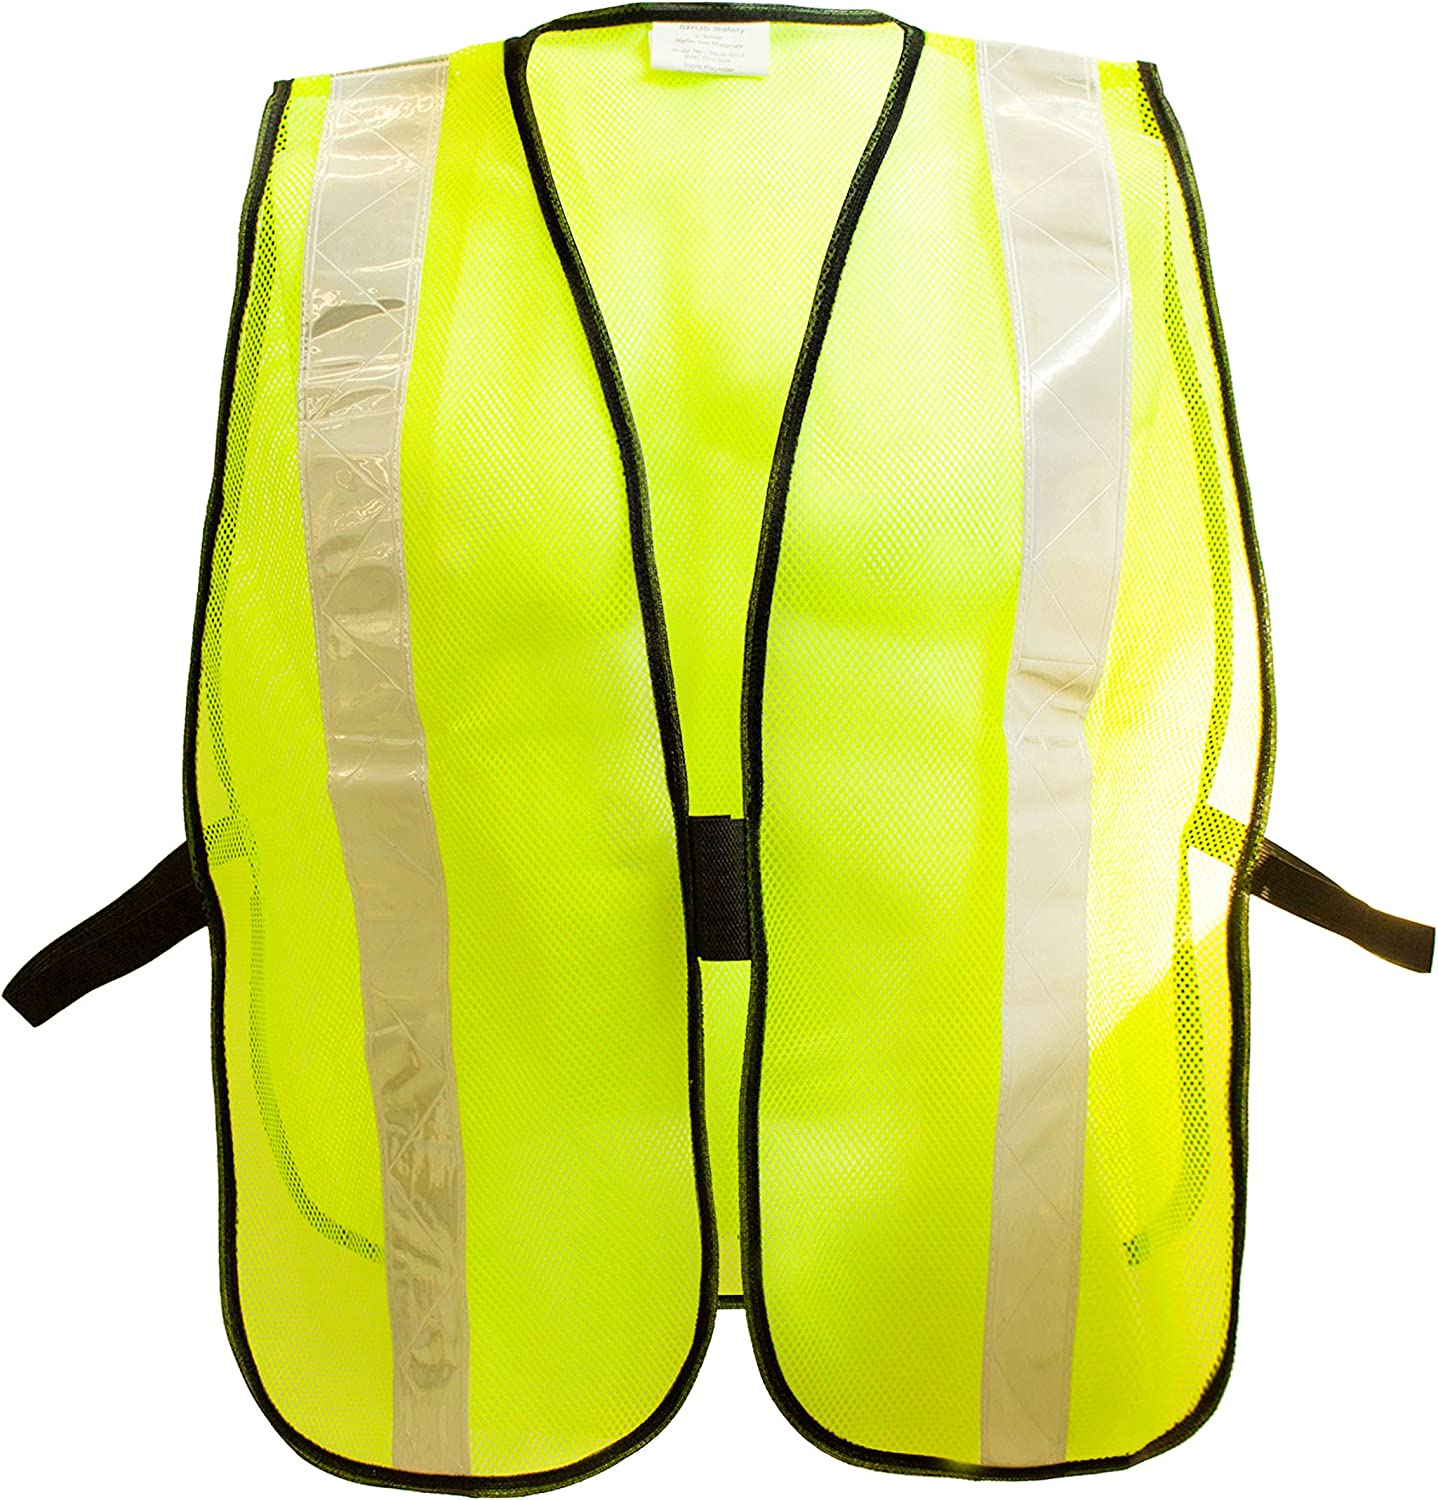 Box Deal RK 8012 Safety Vest 50- Albuquerque discount Mall Pack Stripes Reflective with